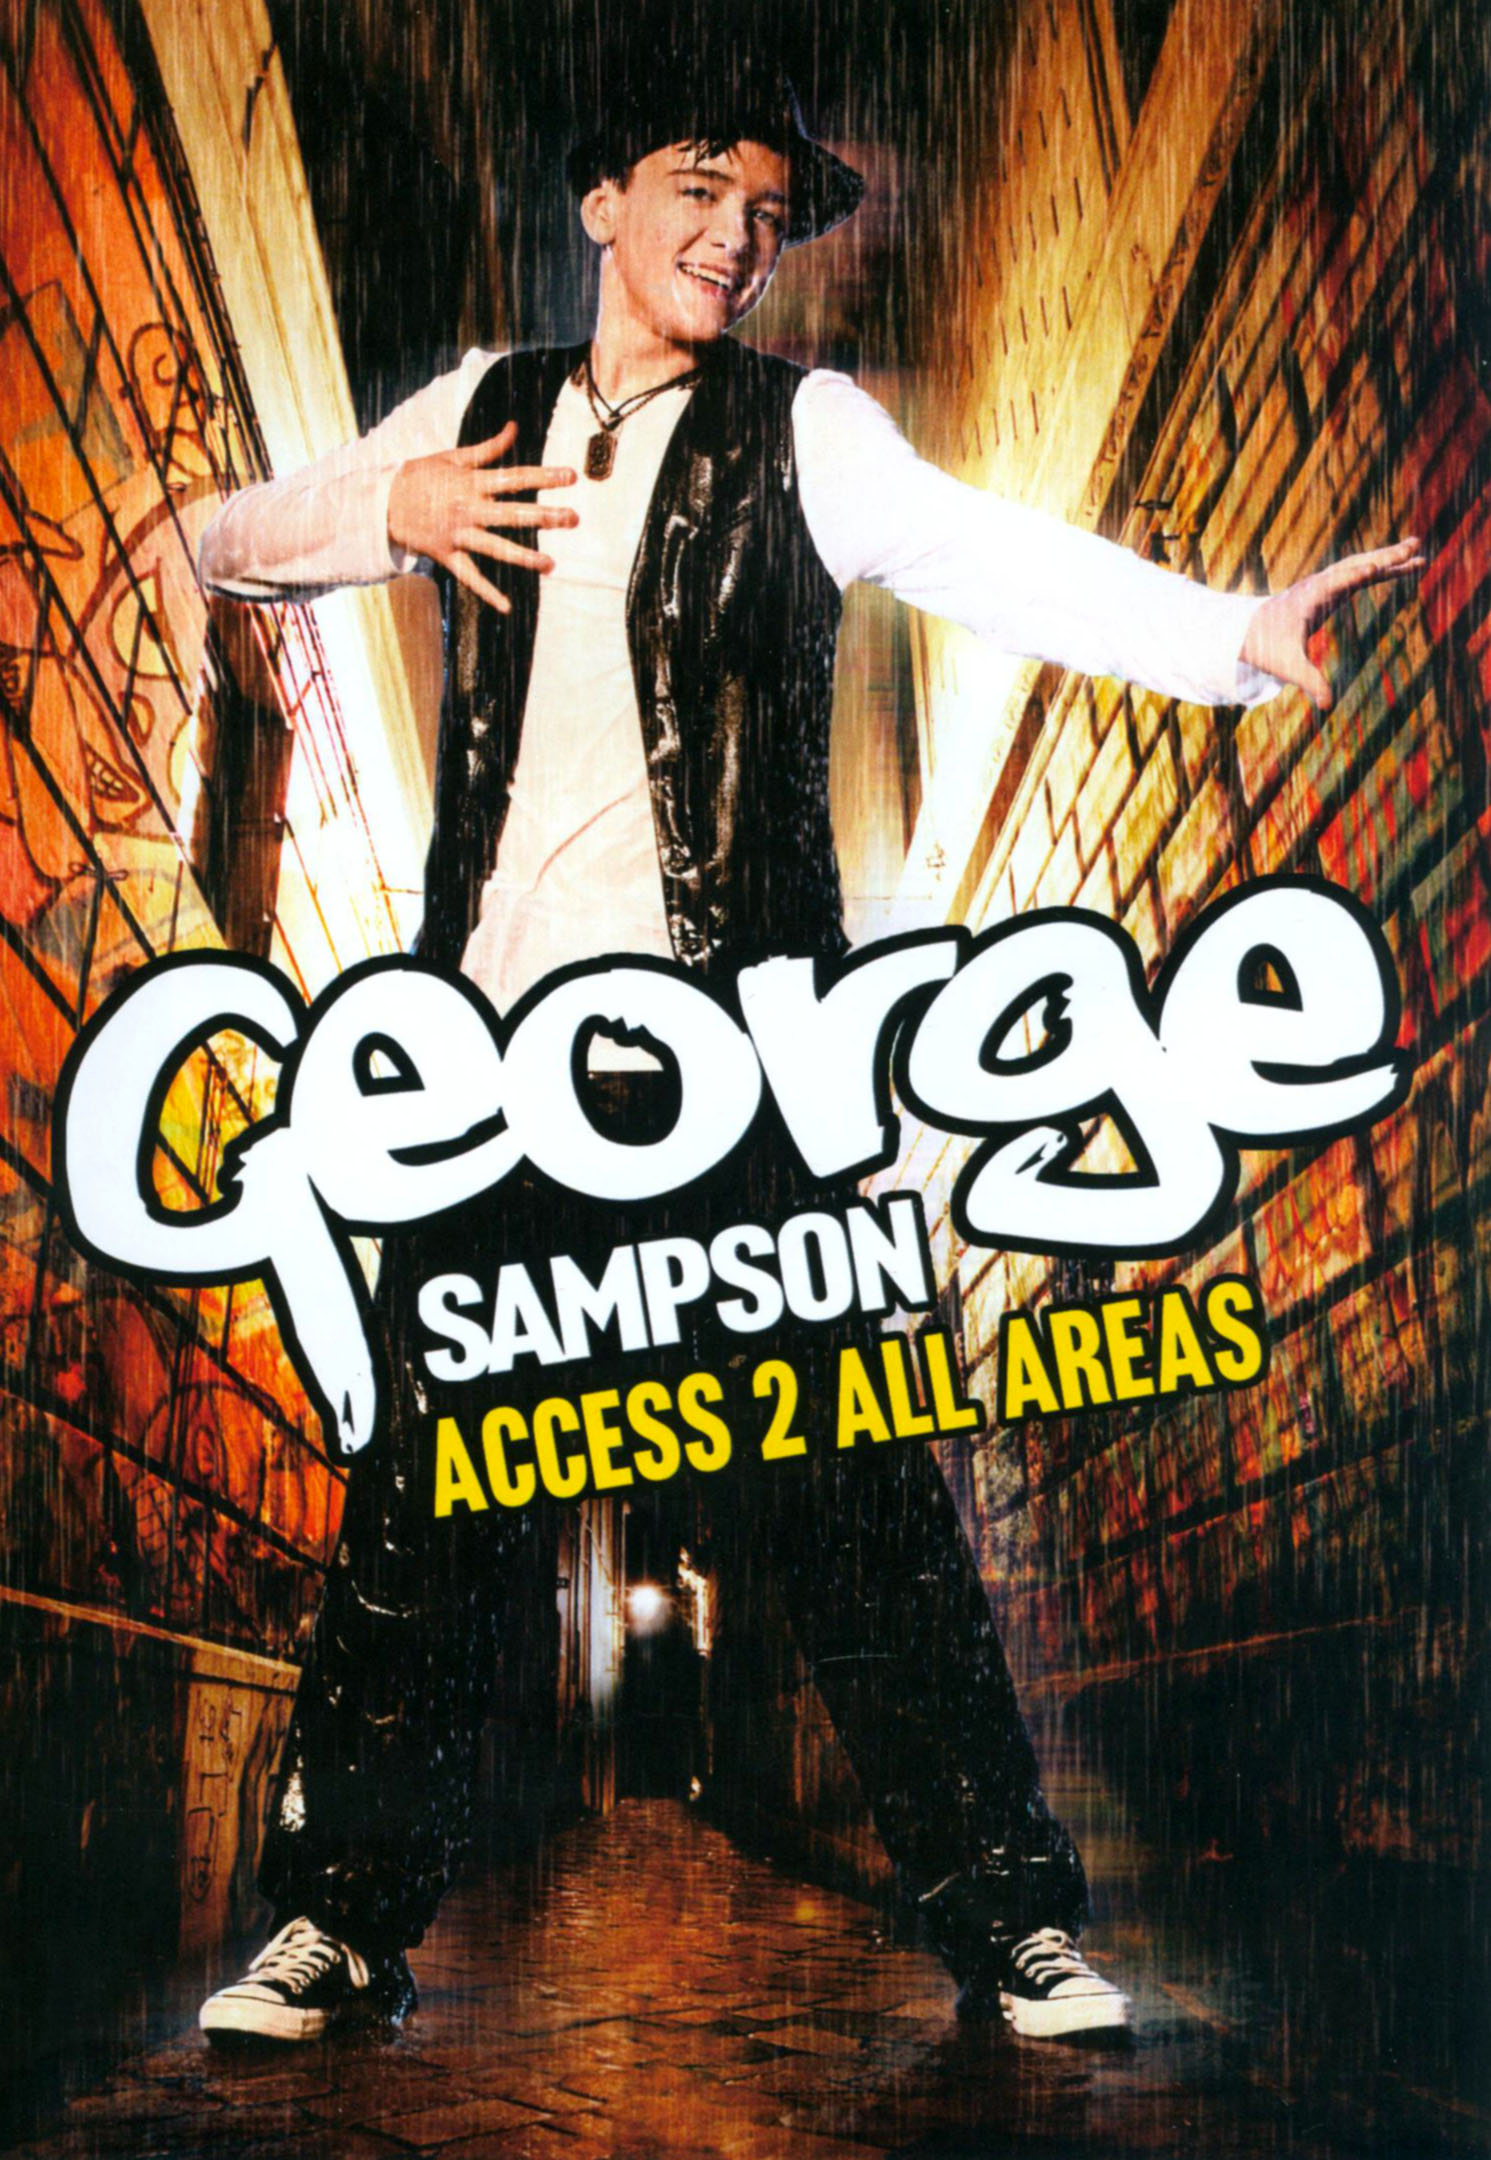 George Sampson: Access 2 All Areas